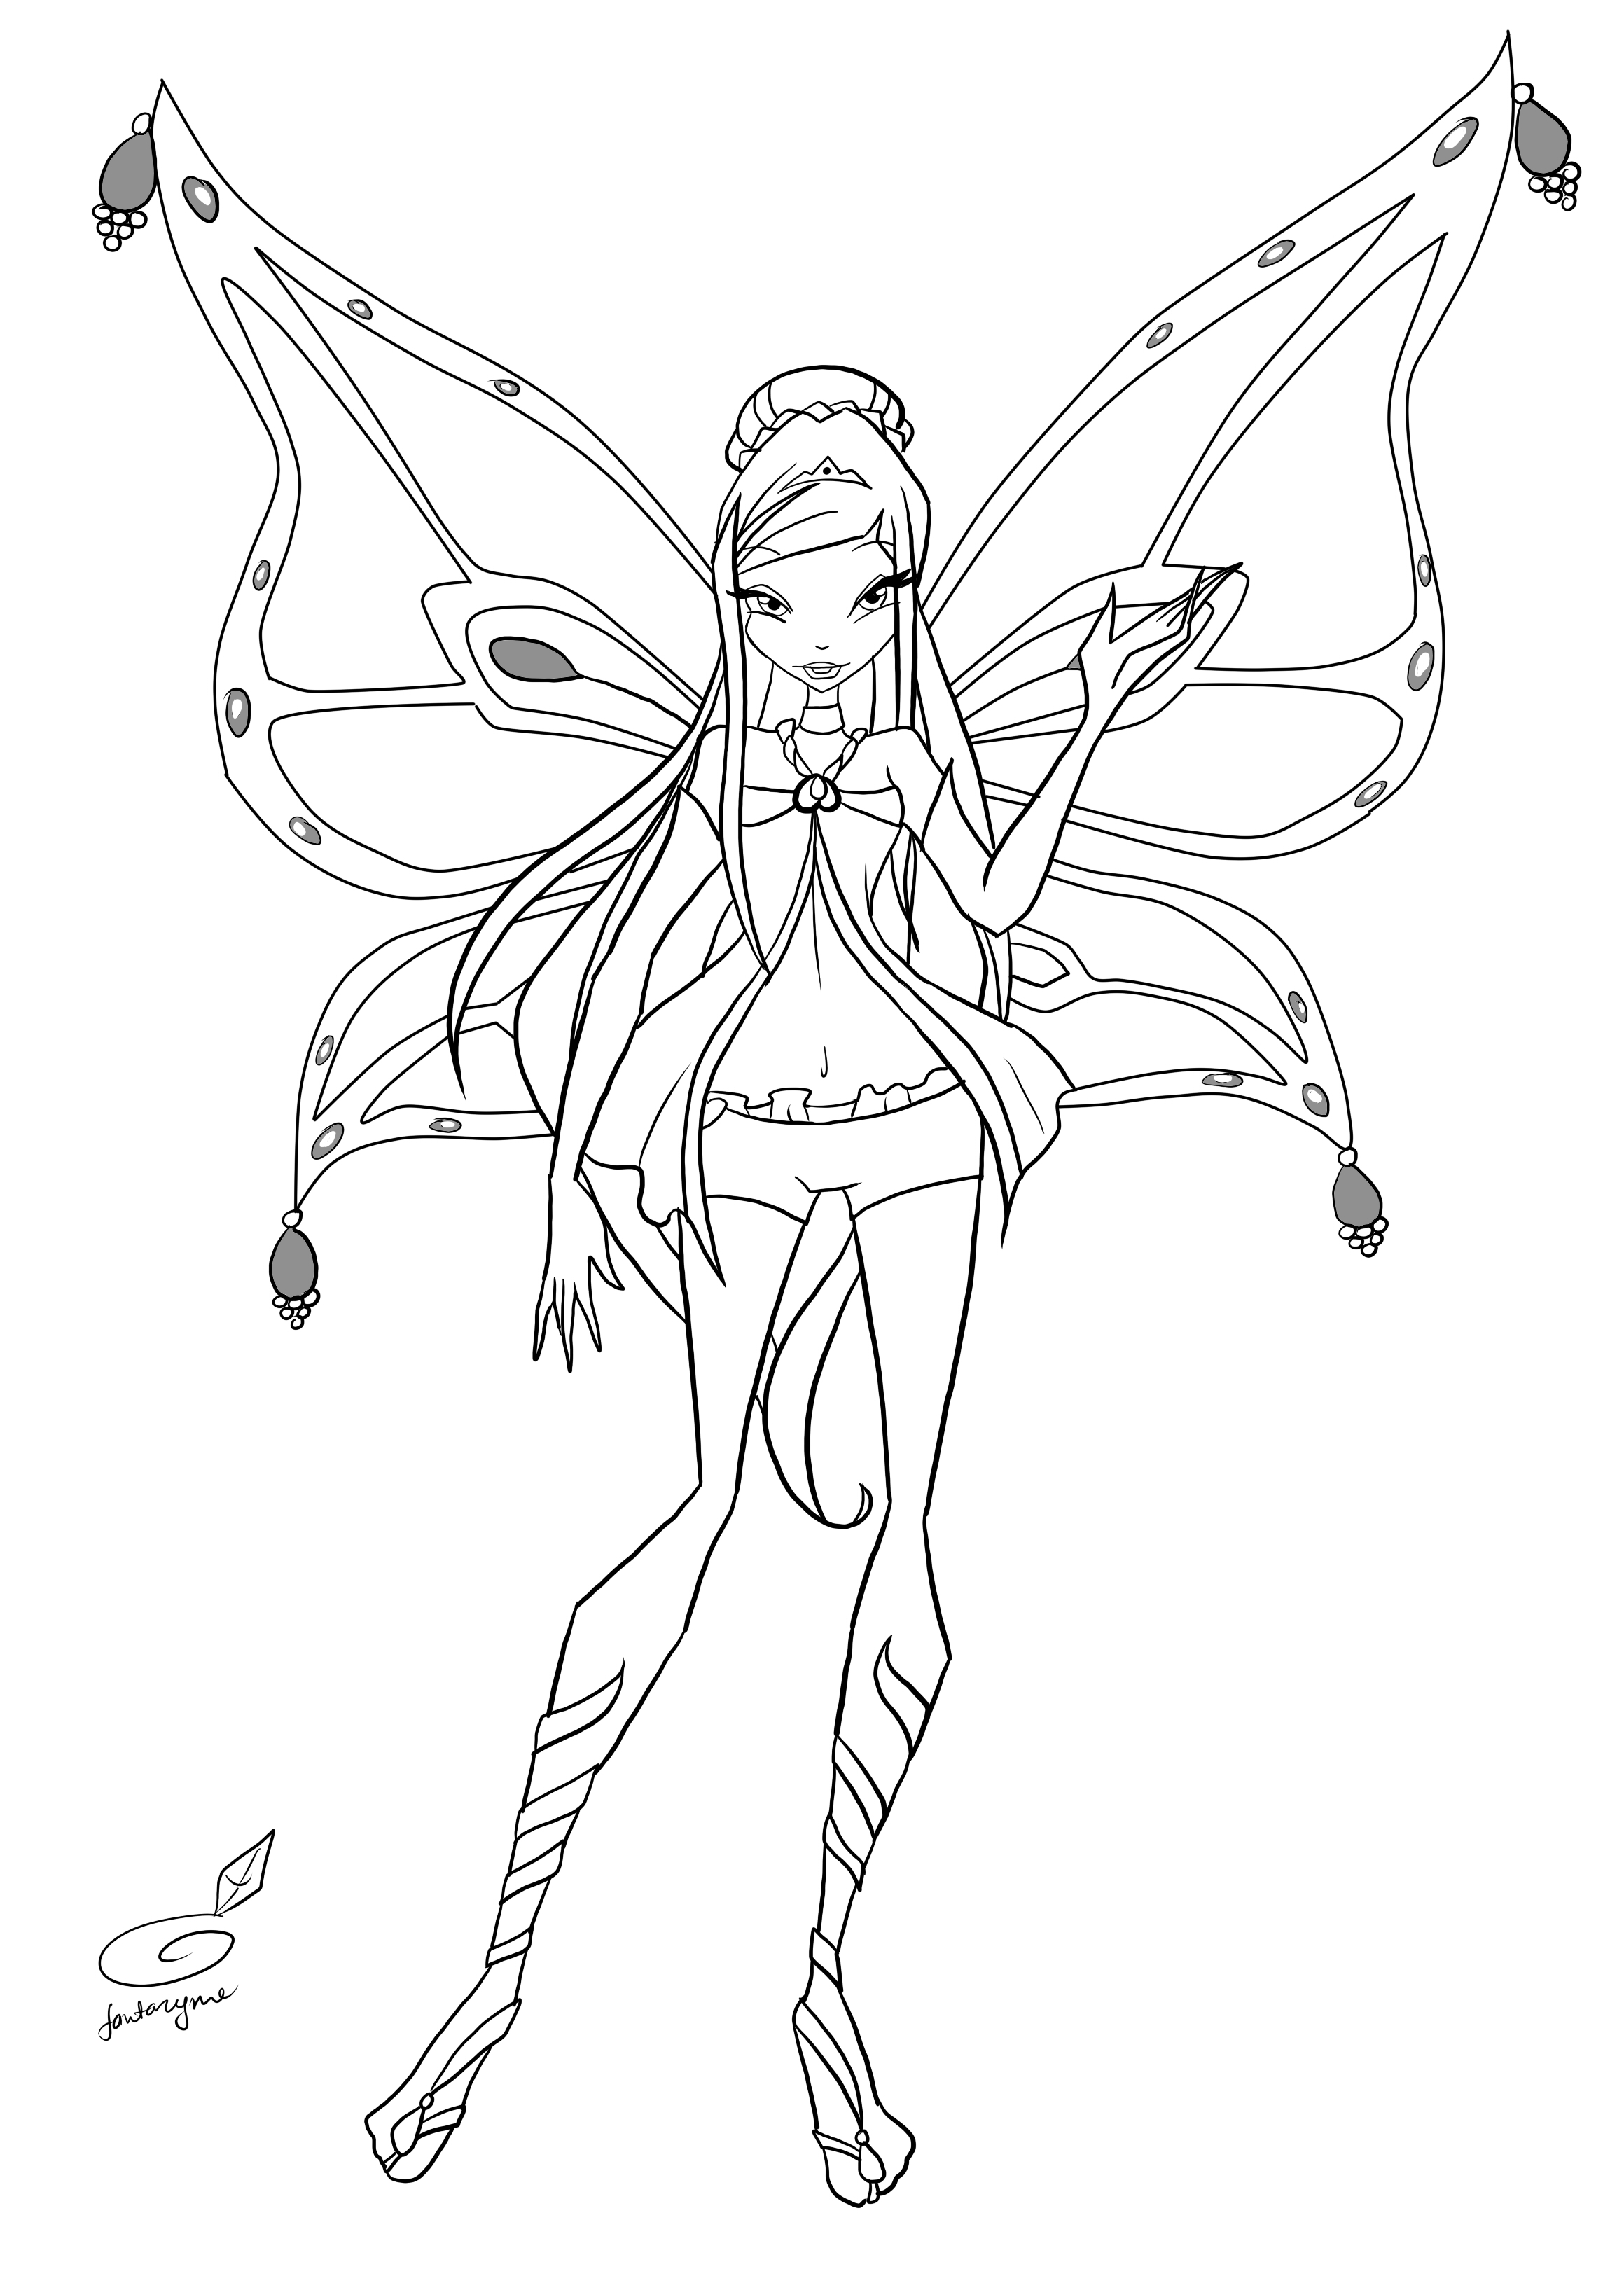 Winx Roxy Coloring Pages Printable For Kids And